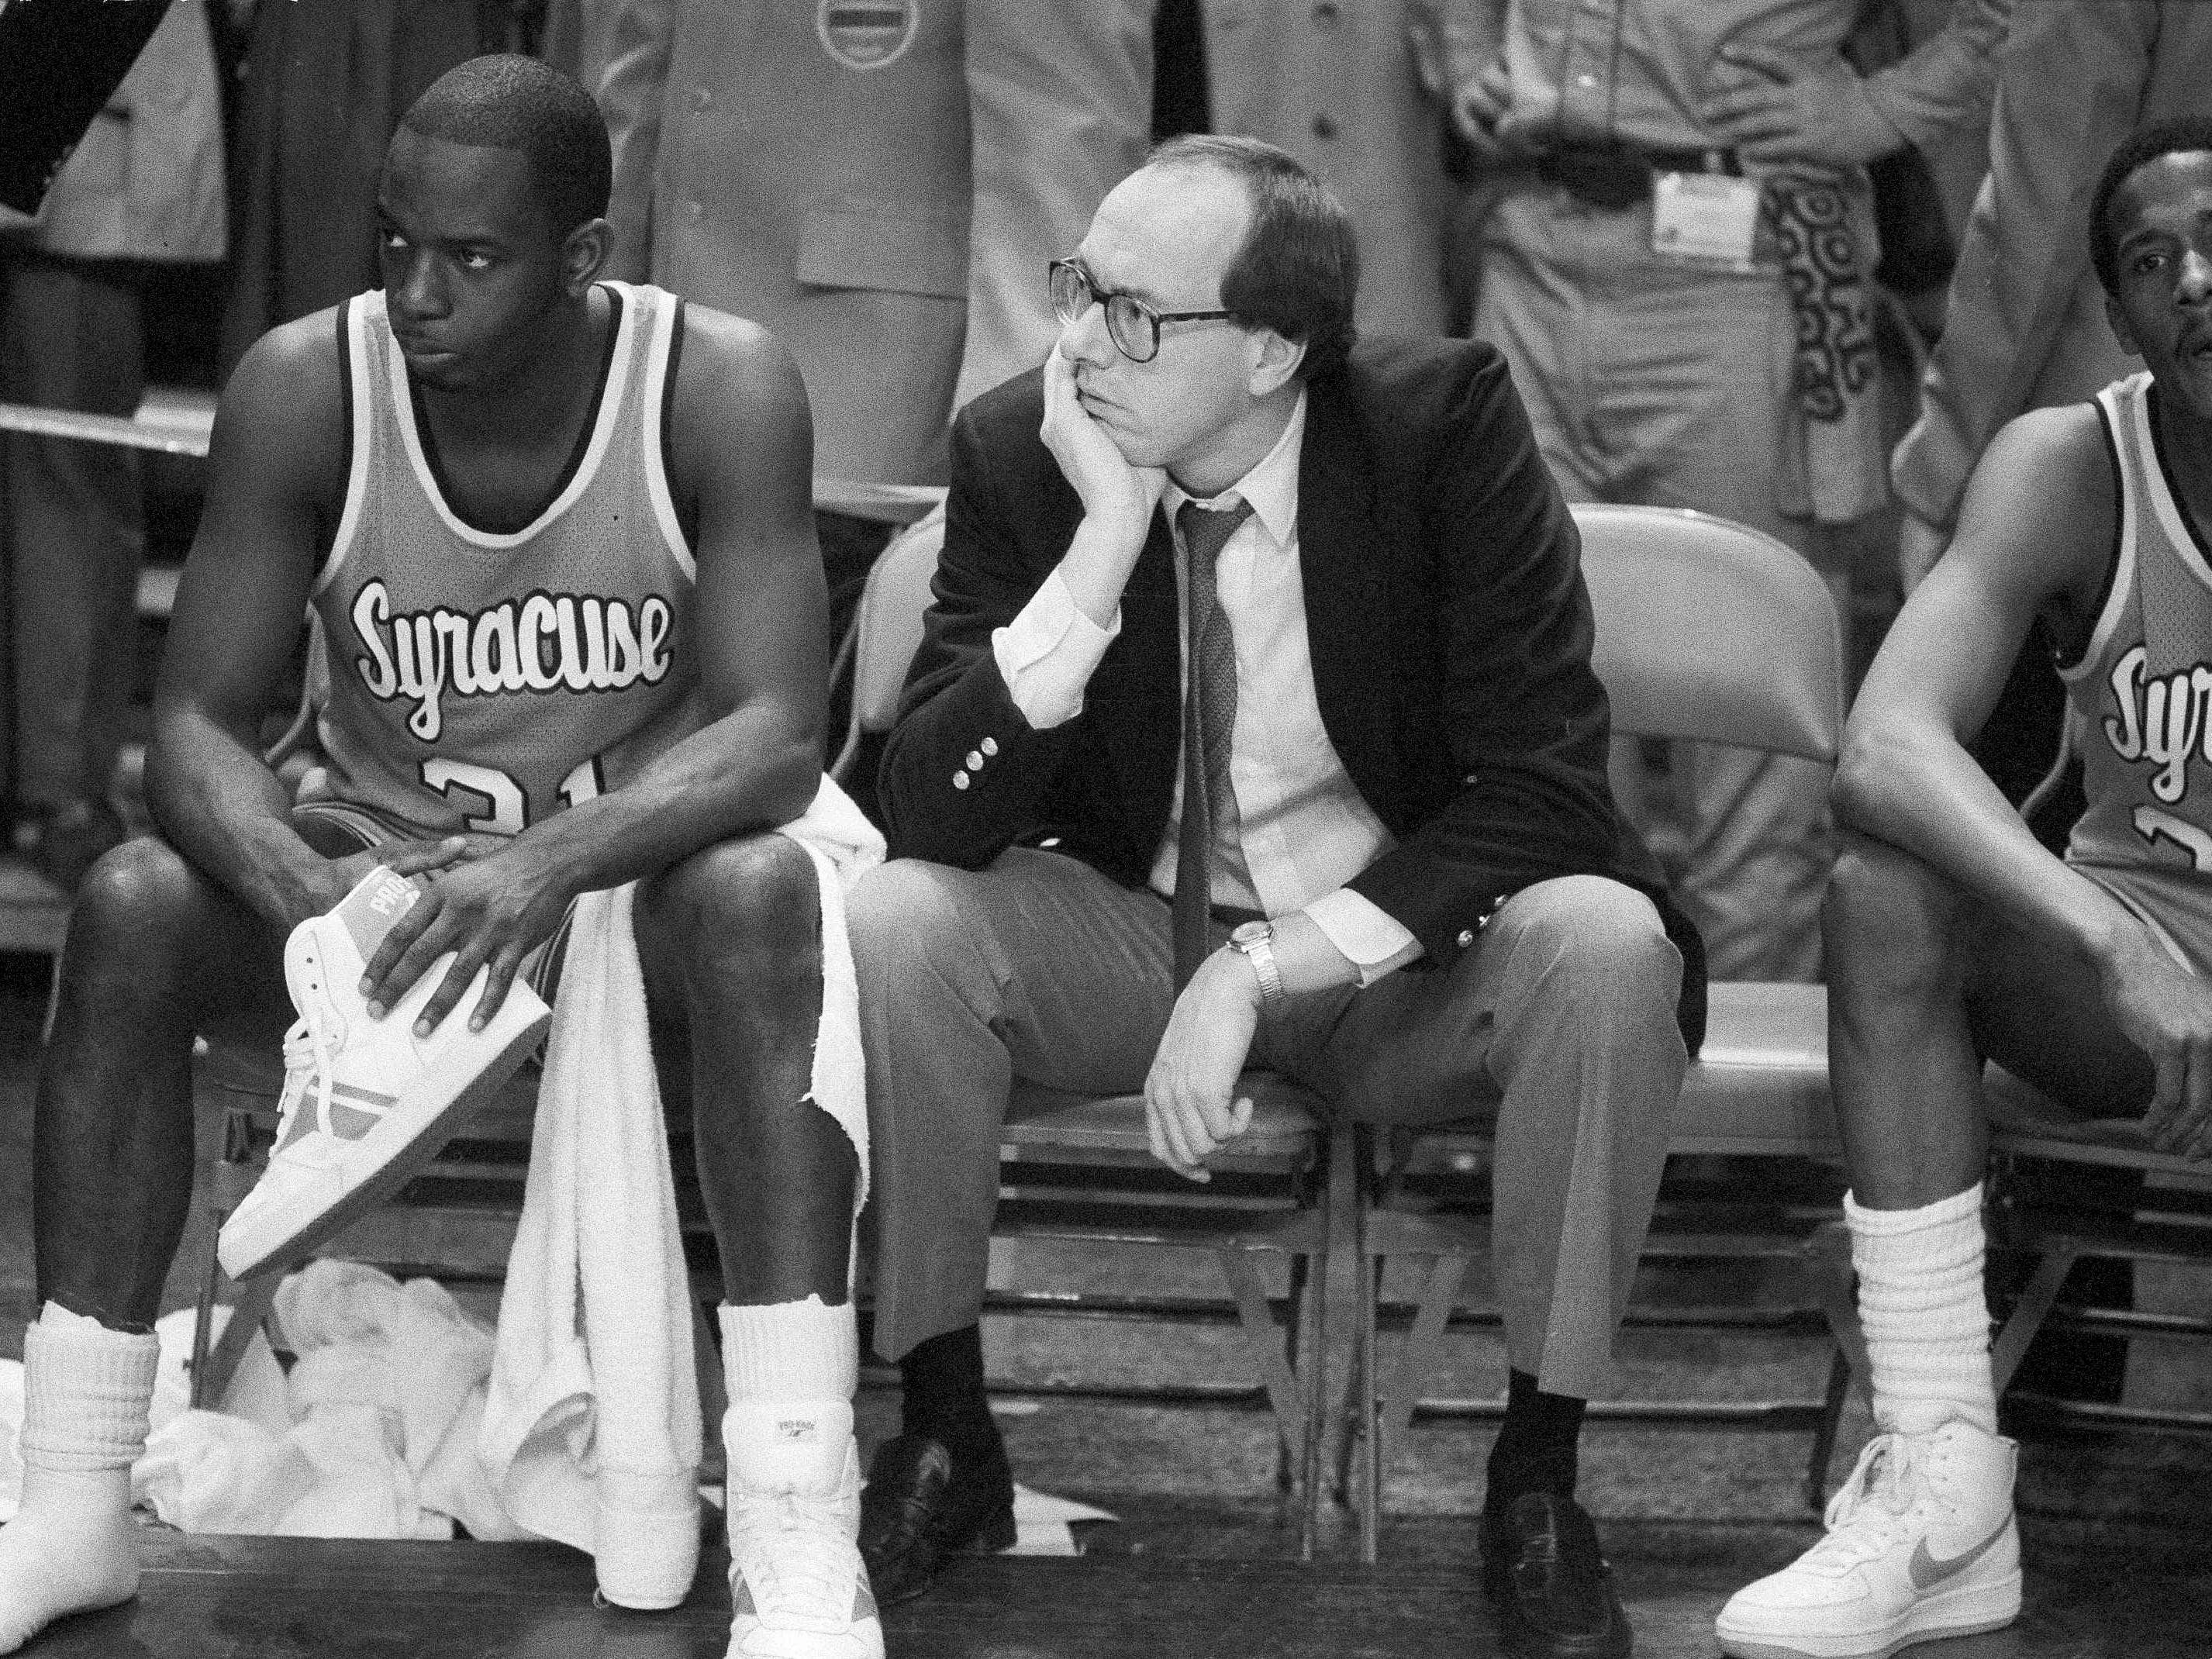 FILE - In this March 10, 1984, file photo, Syracuse coach Jim Boeheim, right, and Syracuse player Dwayne Washington (31) watch as Georgetown University took control in overtime of the Big East Conference championship basketball game at Madison Square Garden in New York.